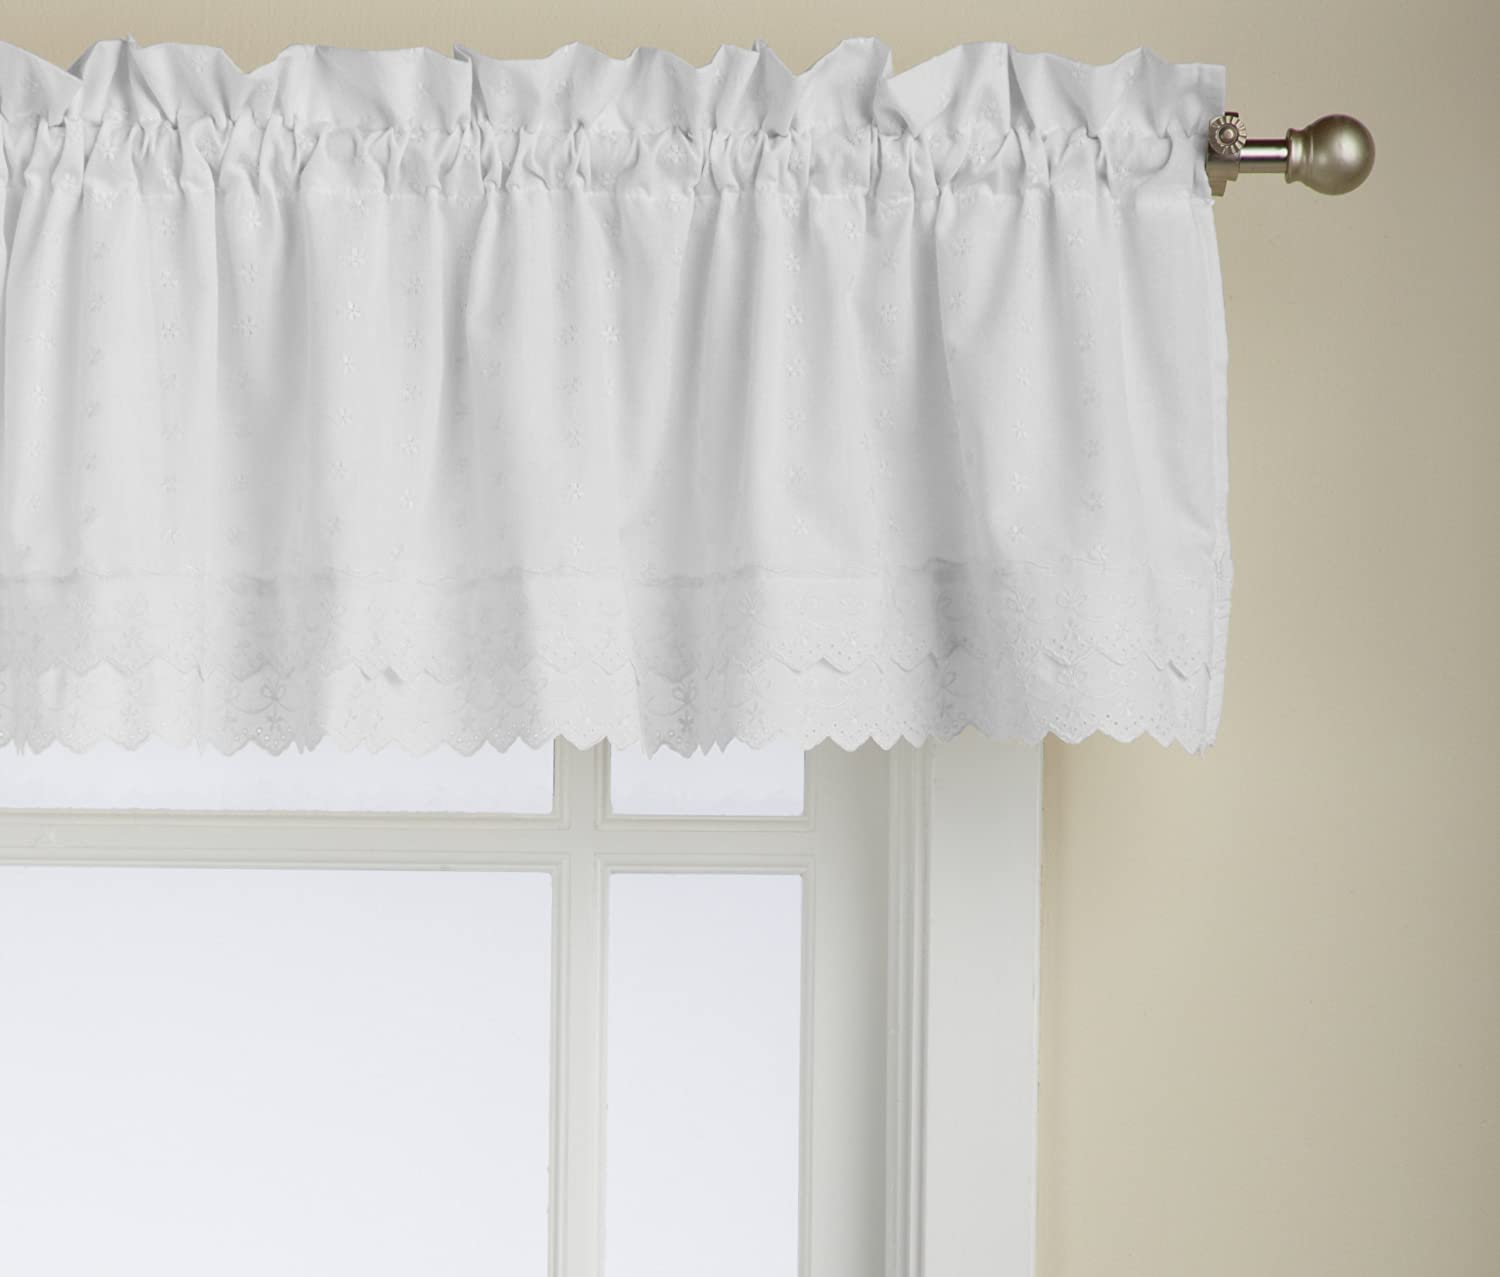 LORRAINE HOME FASHIONS Ribbon Eyelet Valance, 60 by 12-Inch, White